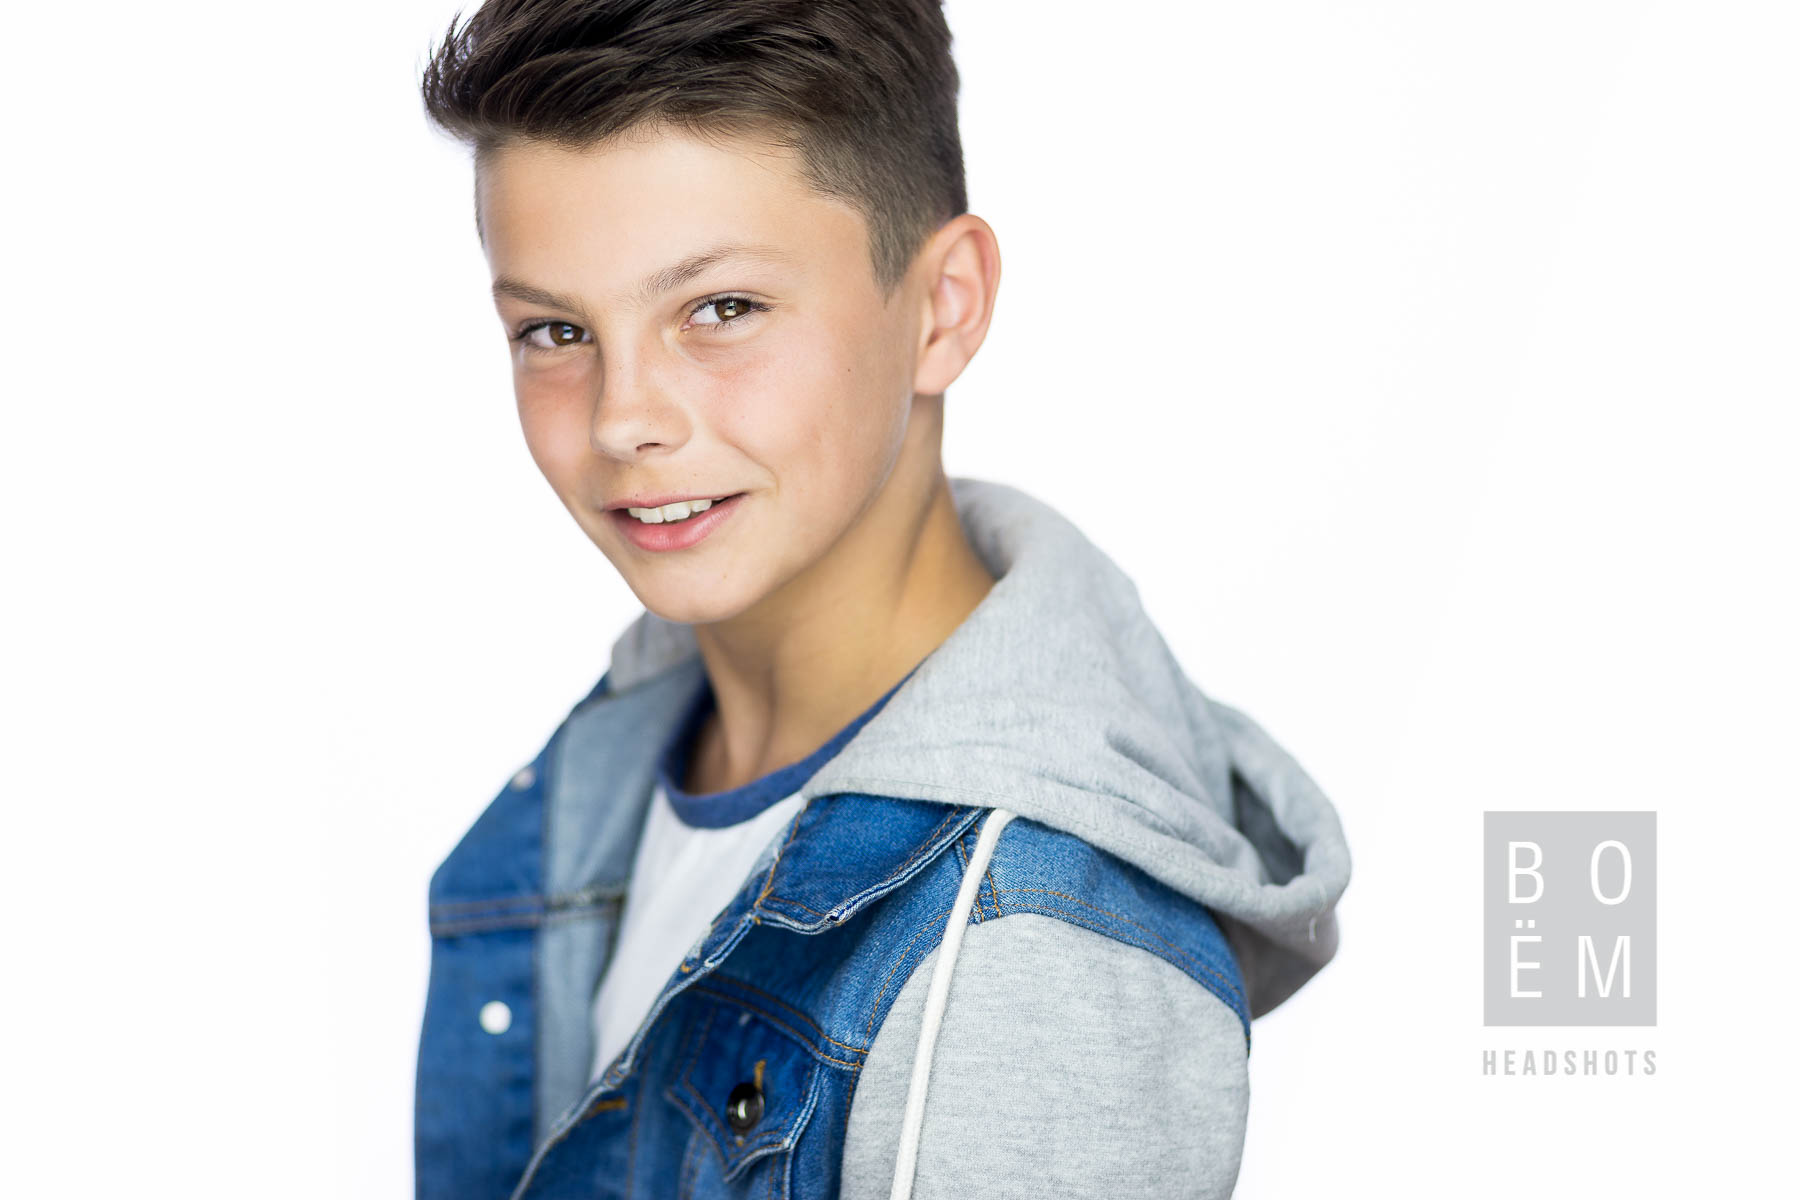 A preview of my session with the highly talented young actor Harry. We had the pleasure of having this young man in the studio today and he did a fantastic job with his new headshots for acting and dance. More to come!